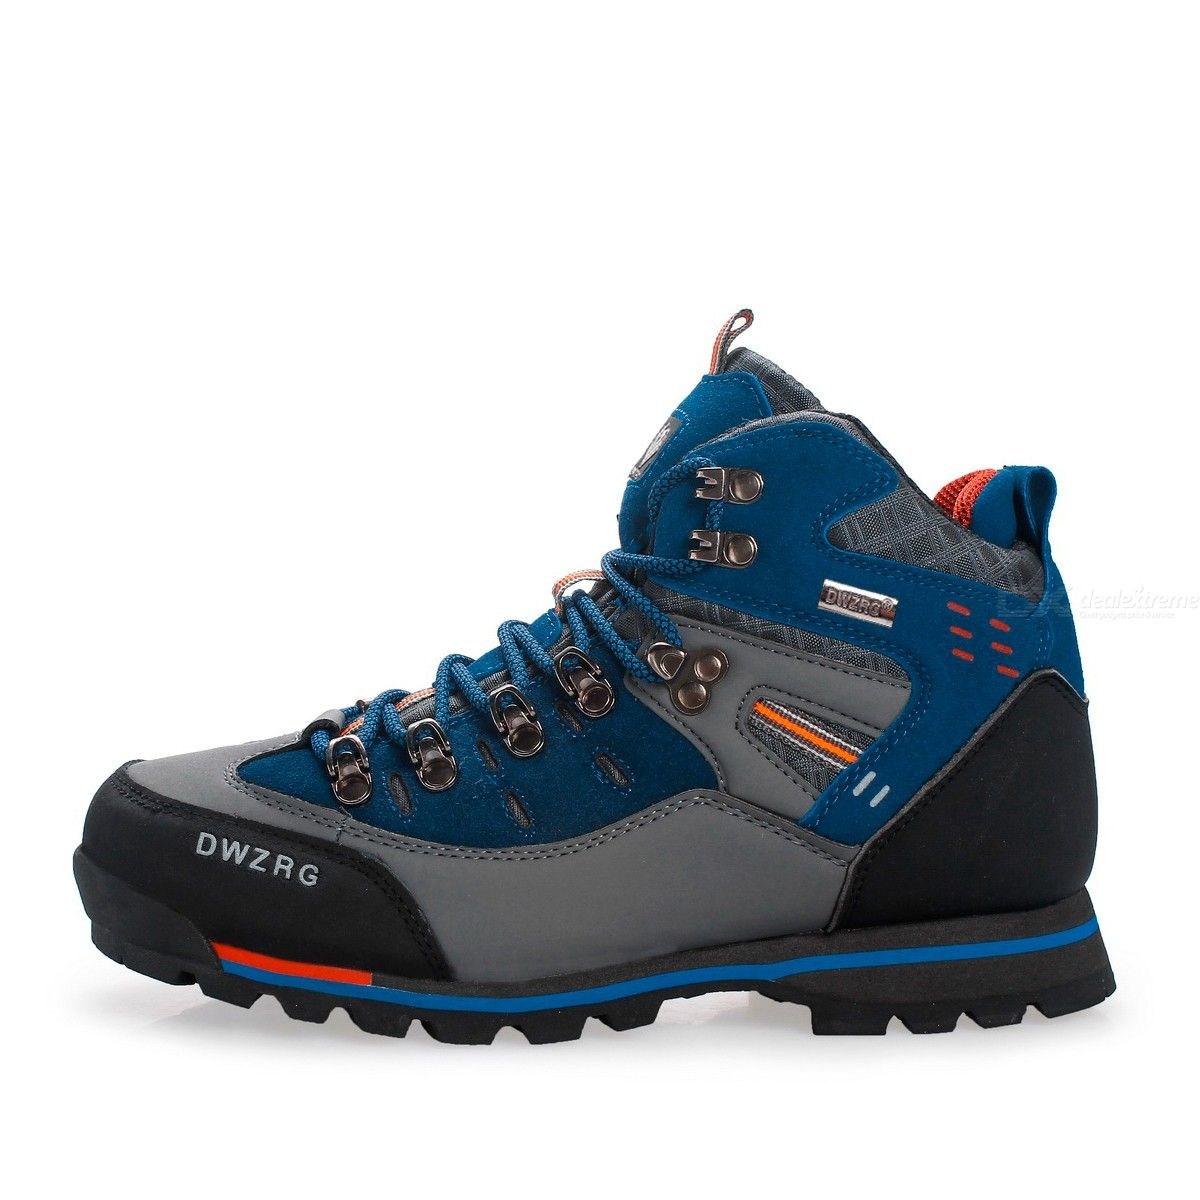 Outdoor High-end Mountaineering Shoes Wear-resistant Climbing Shoes and Skid-resistant Hiking Shoes for...